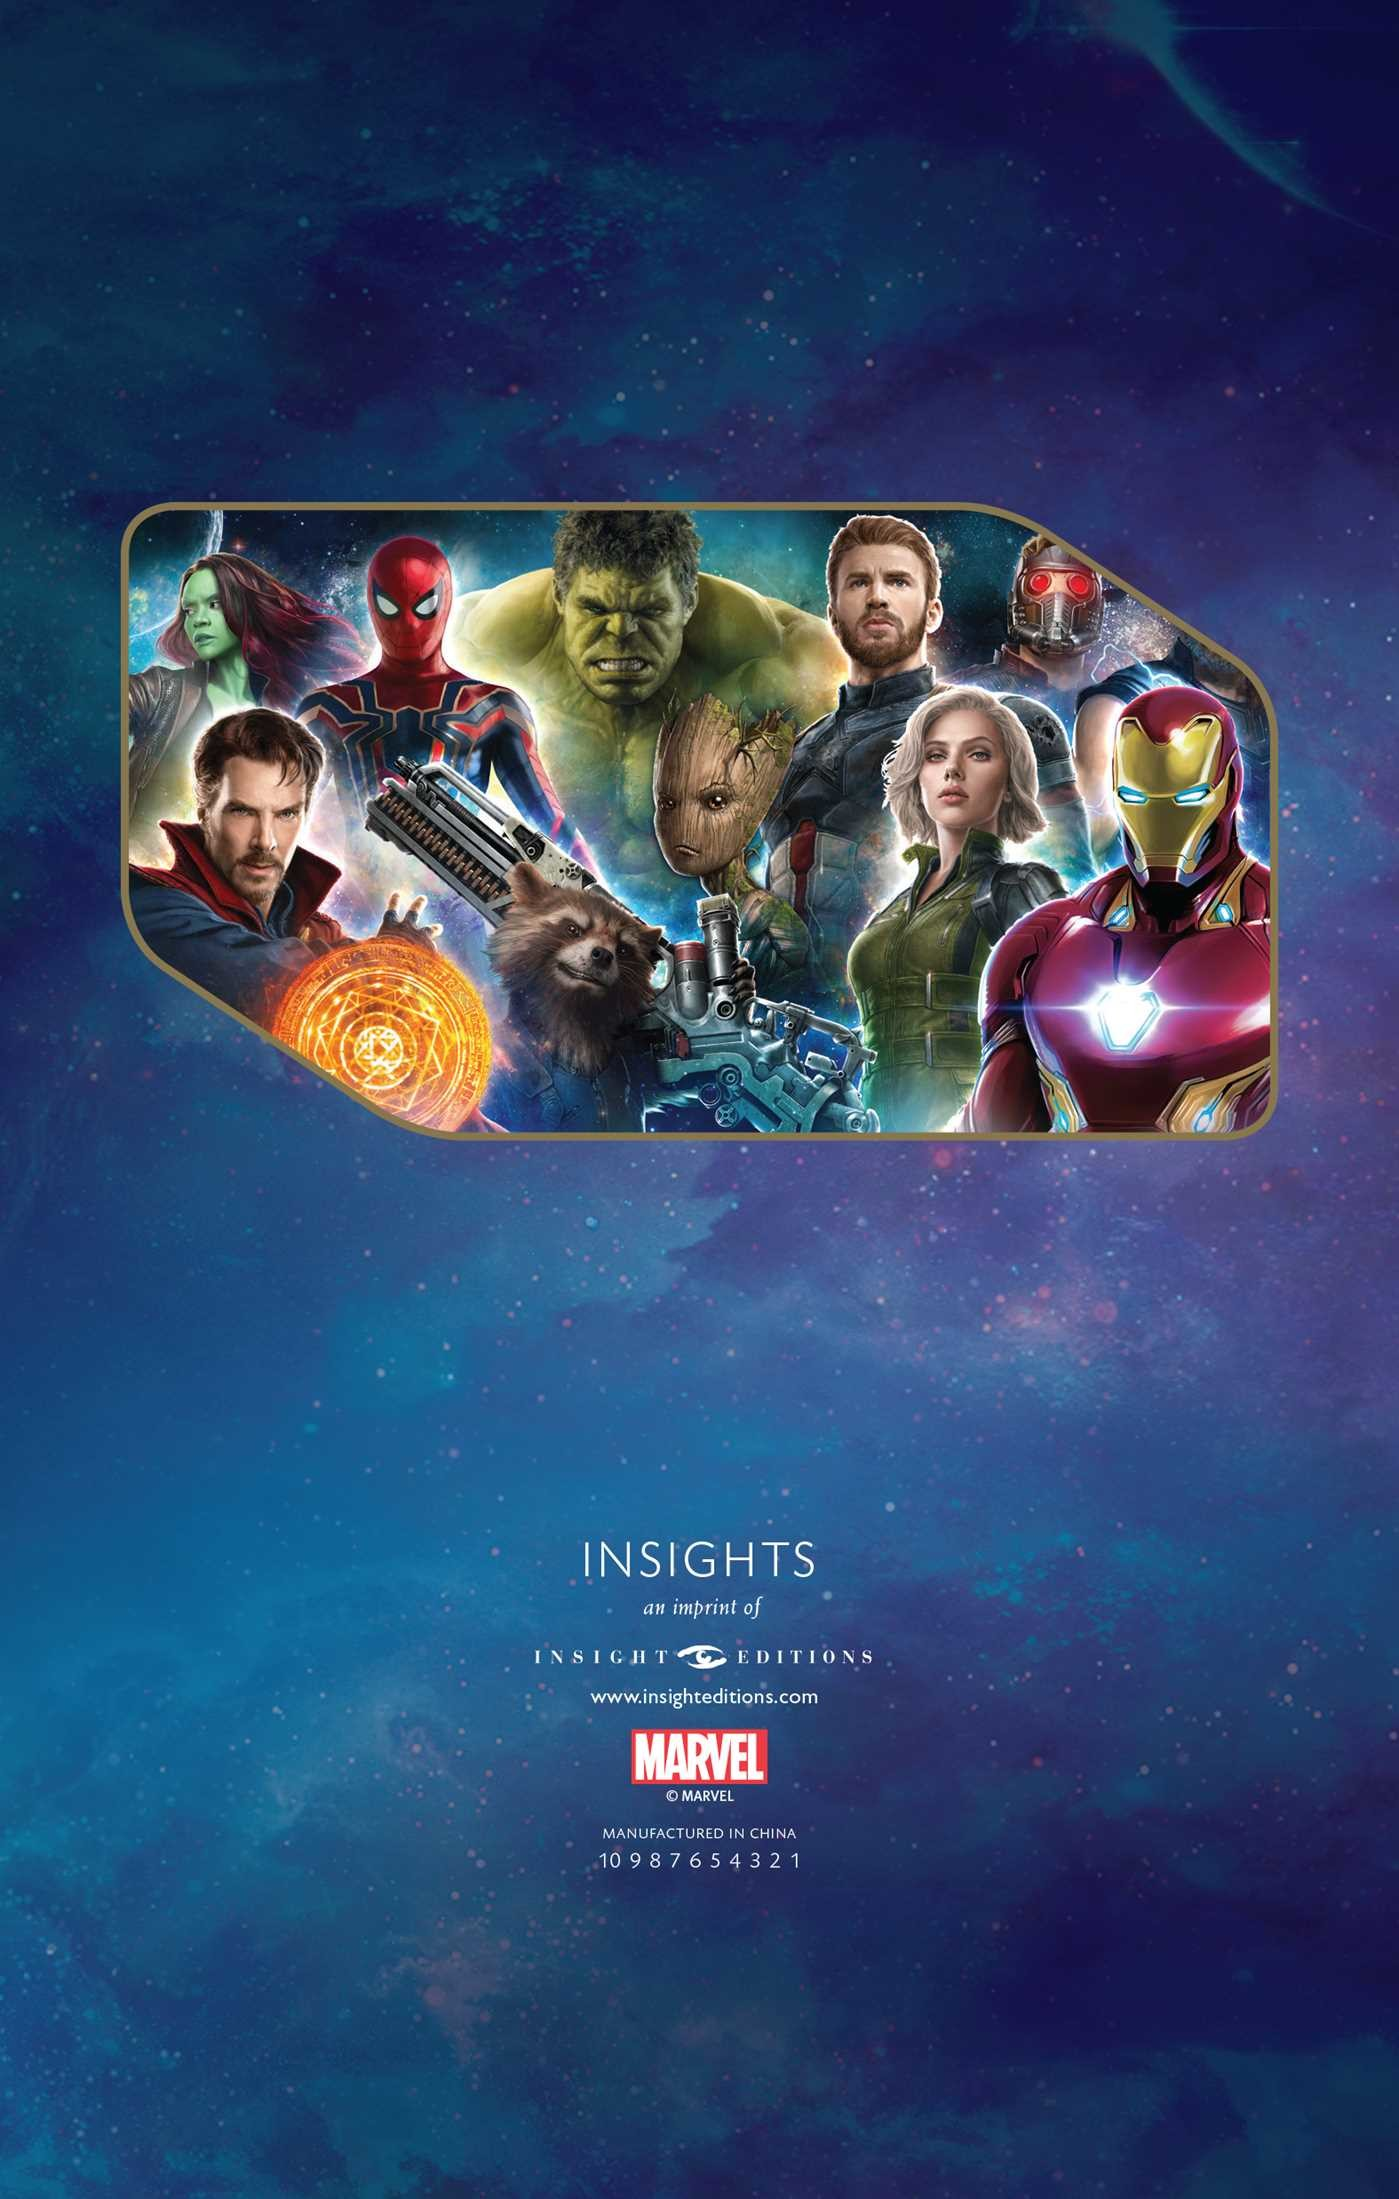 marvel's avengers: infinity war hardcover ruled journal | book by